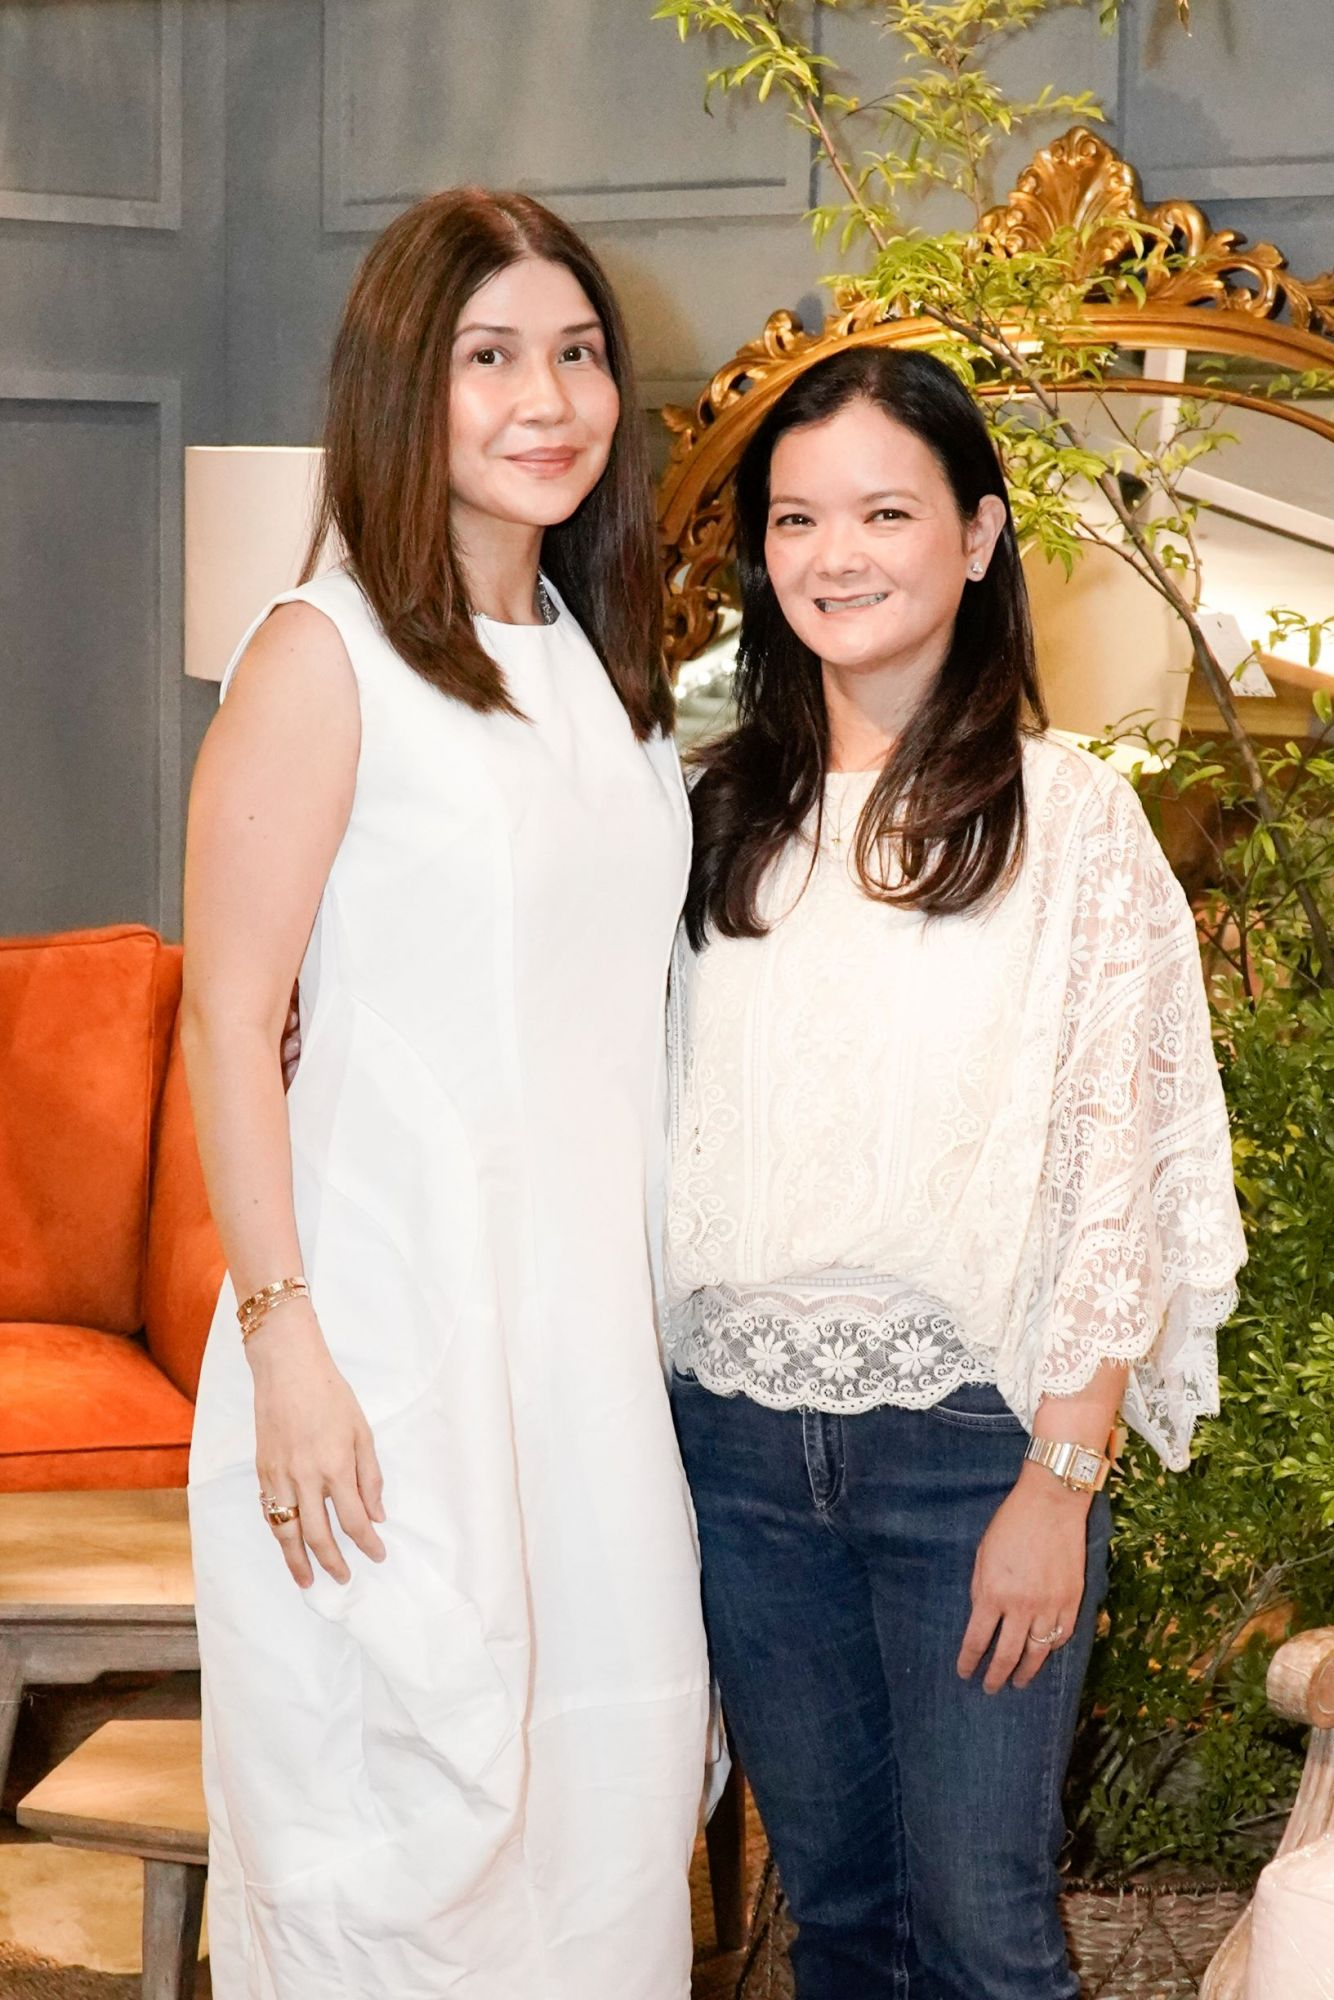 Sisters Pam Gonzales Lopez and Maricar Lopez Tiangco are the women behind Lady Scott Jones